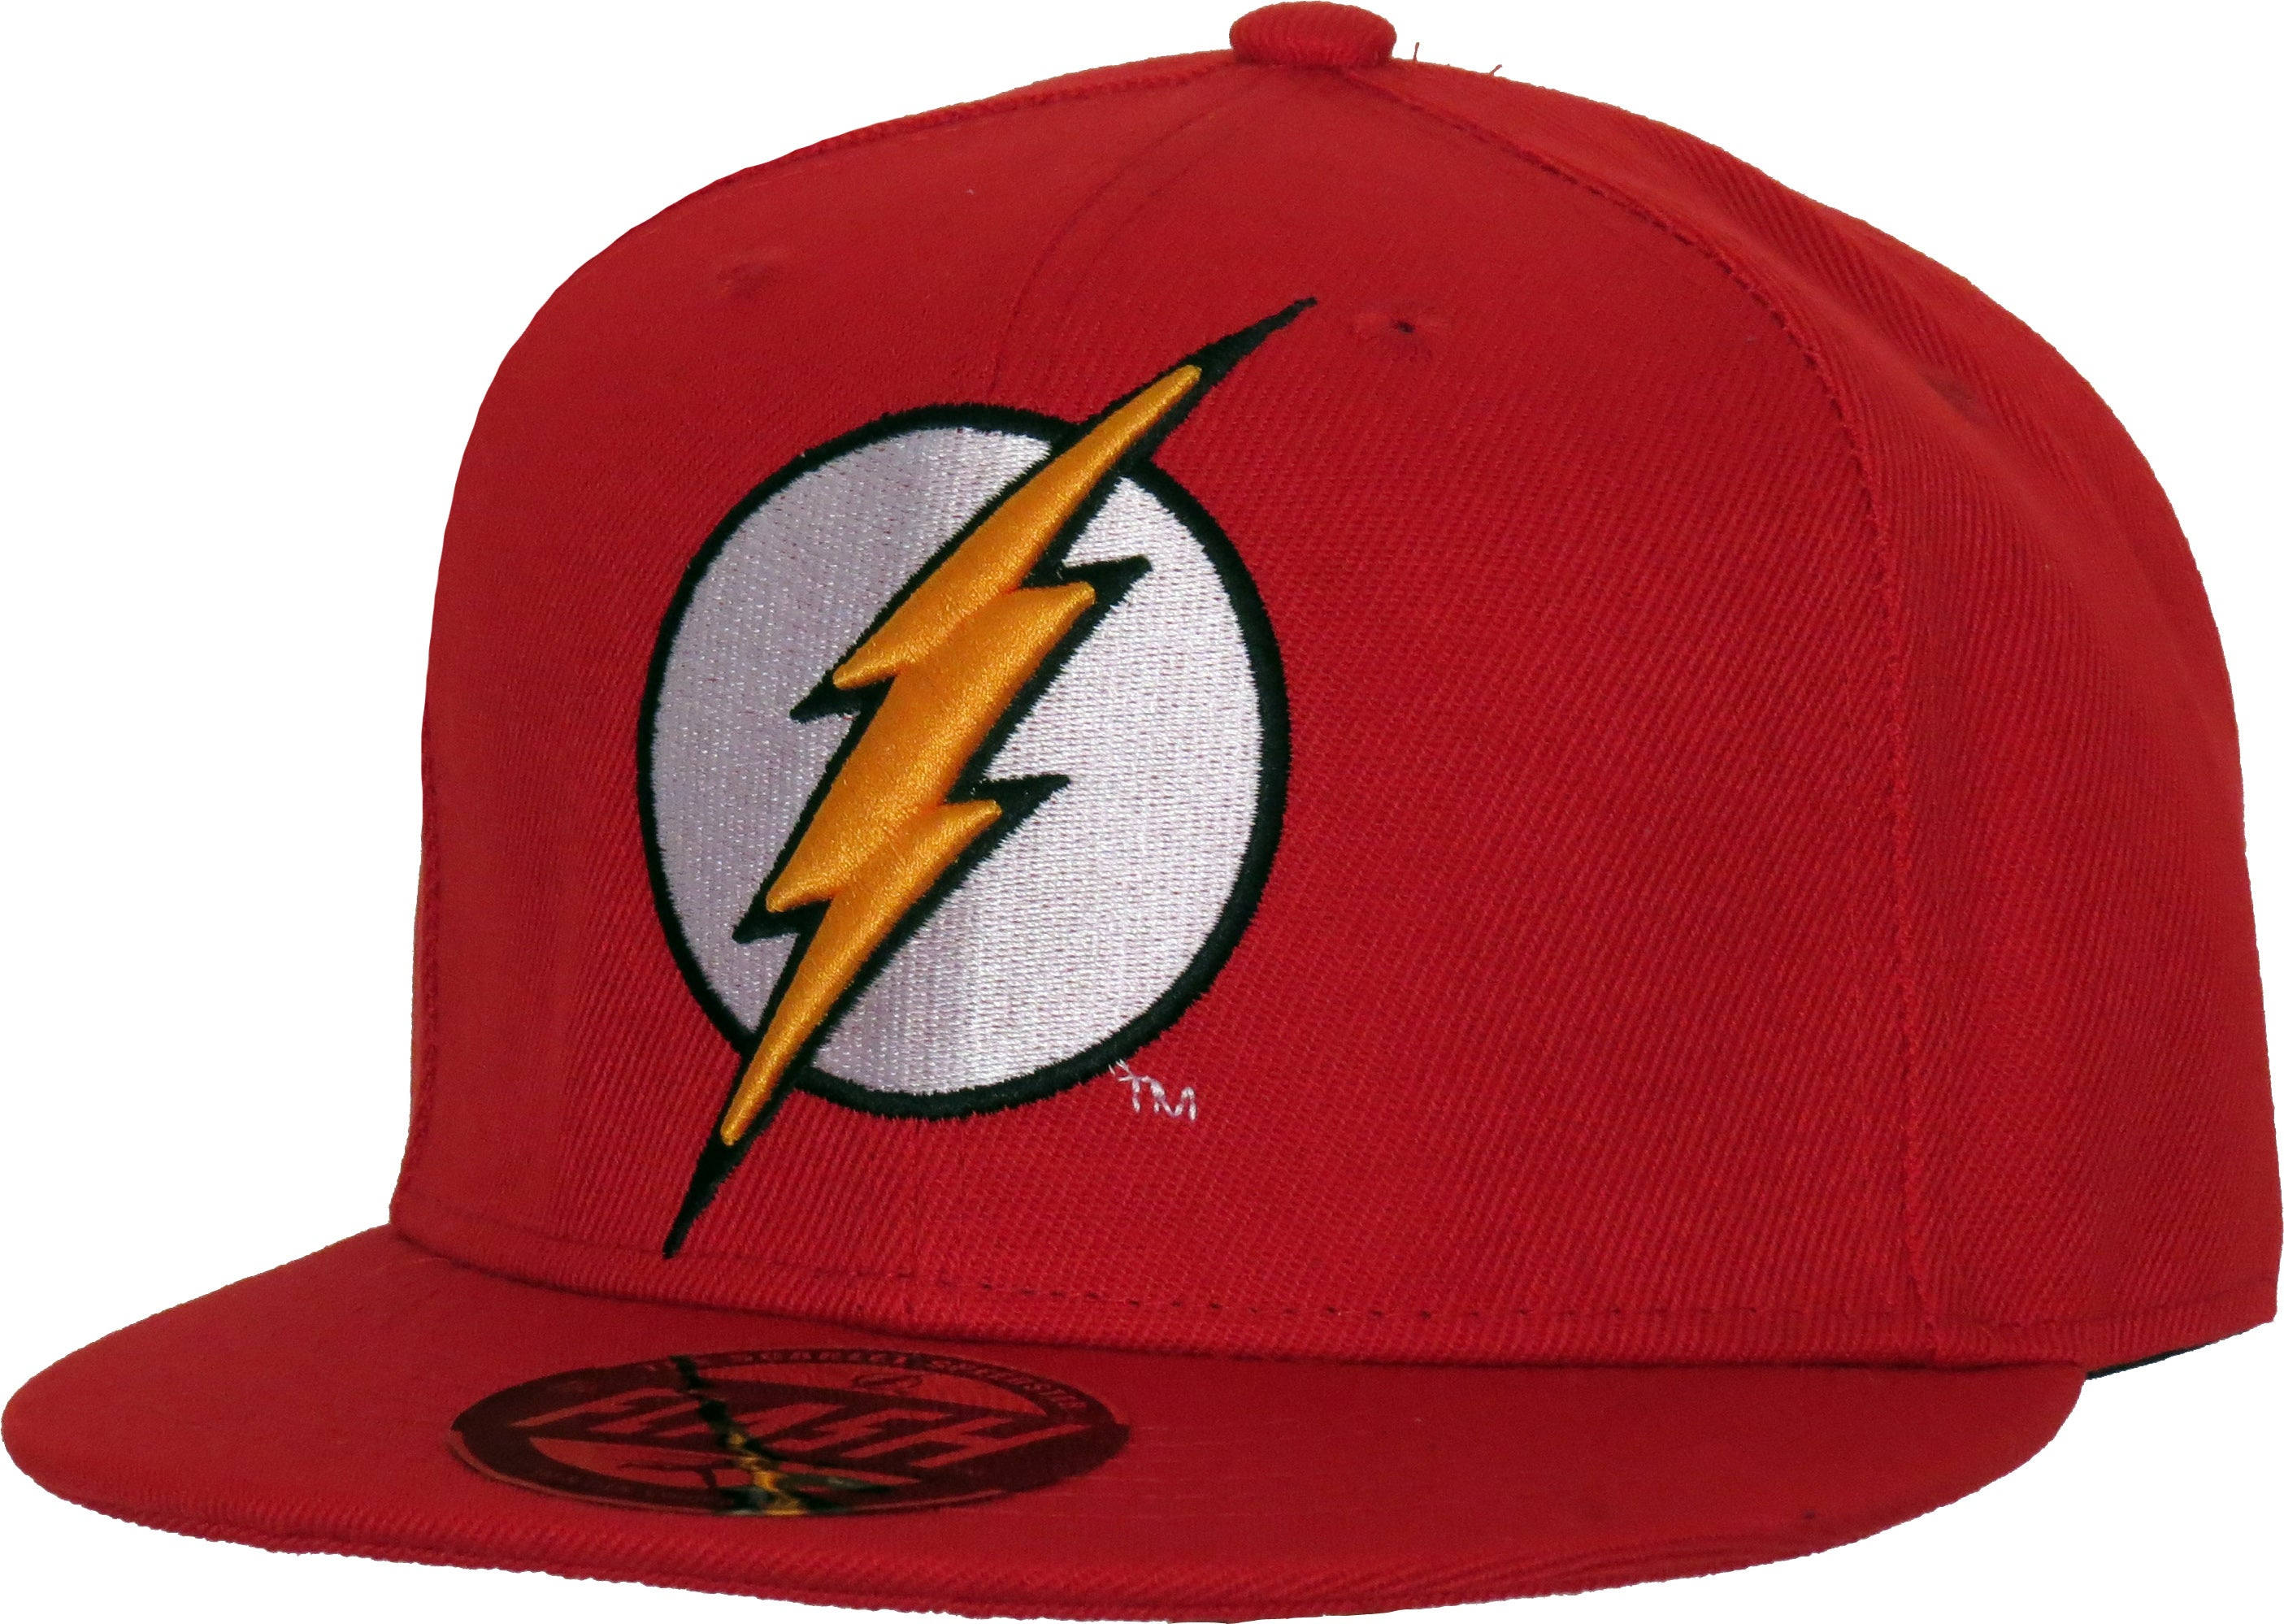 db8e3b9cd7b DC Comics The Flash Classic Logo Red Snapback Cap - pumpheadgear